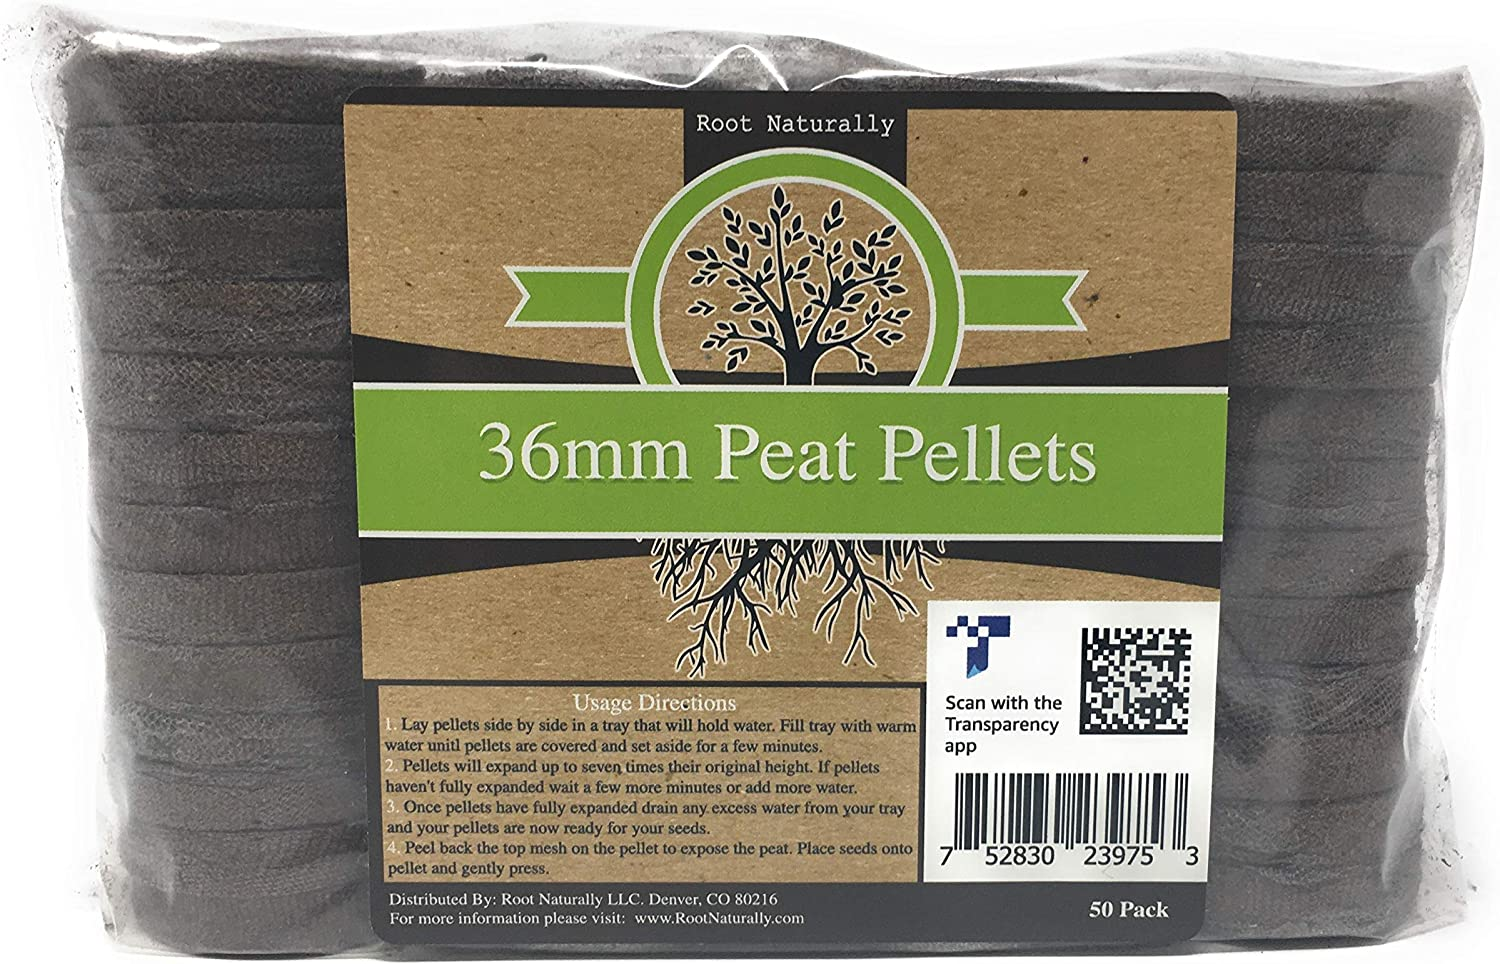 Root Naturally 36mm Peat Pellets - 50 Count